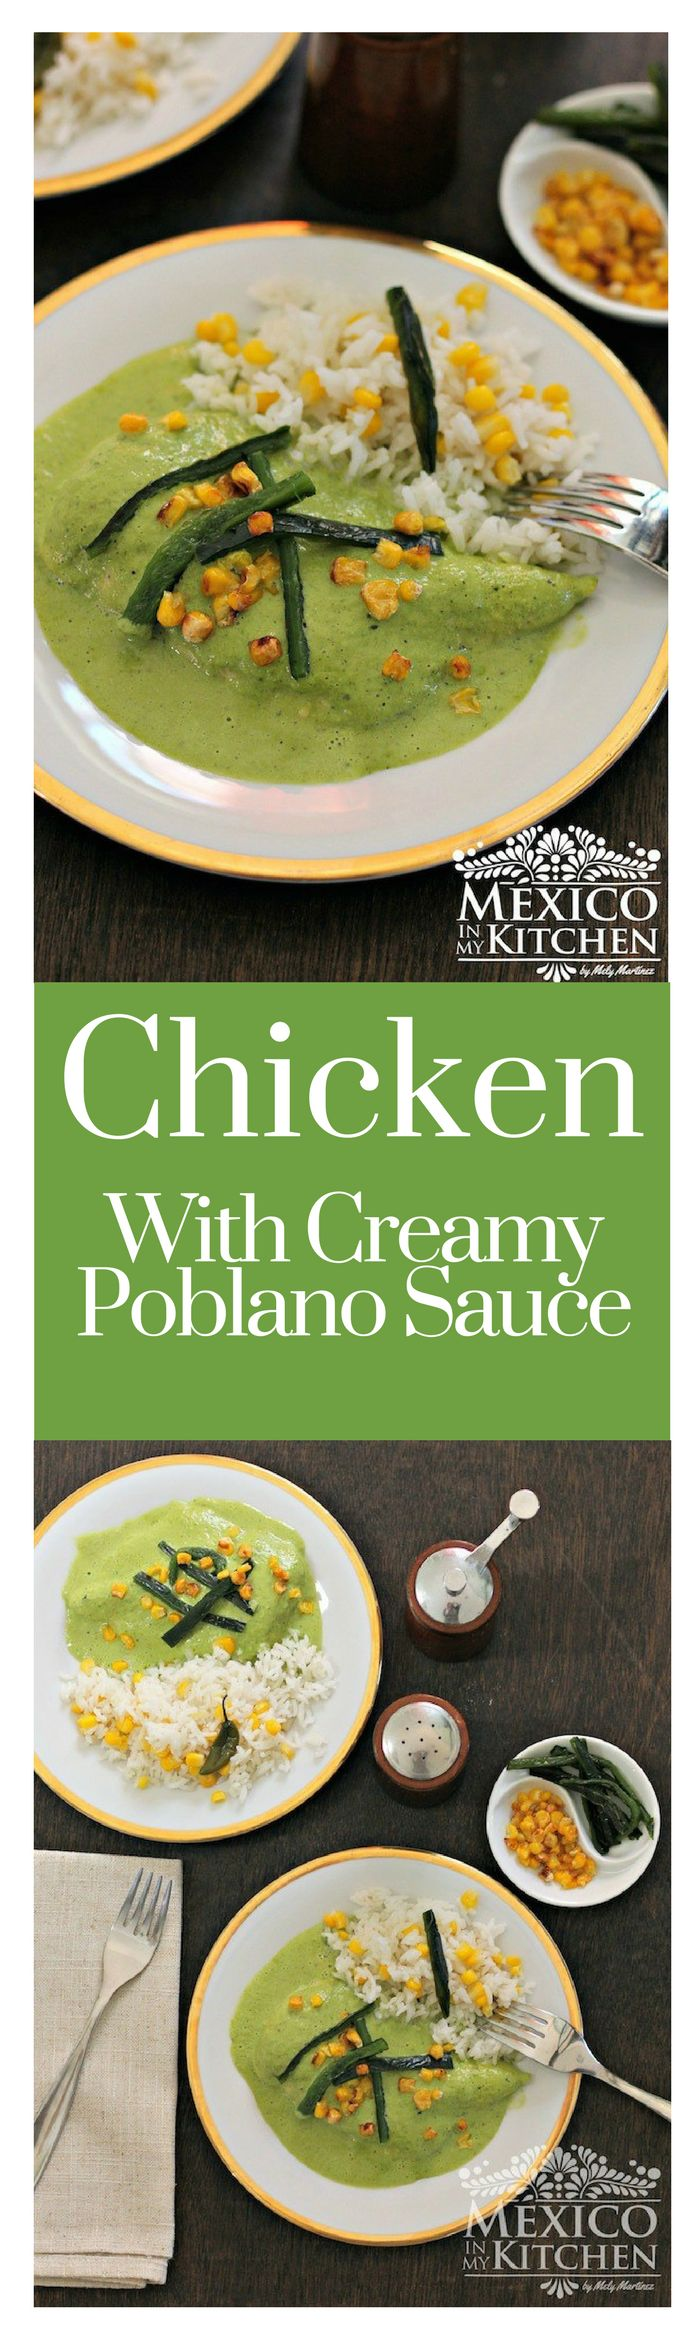 """This Chicken with Creamy Poblano Sauce is another excellent and delicious way to cook Poblano peppers, besides using them to make the famous """"Chiles Rellenos,"""" the stuffed peppers, or for rajas con crema, Poblano strips with cream.#recipe #homecook #mexican #mexicoinmykitchen"""